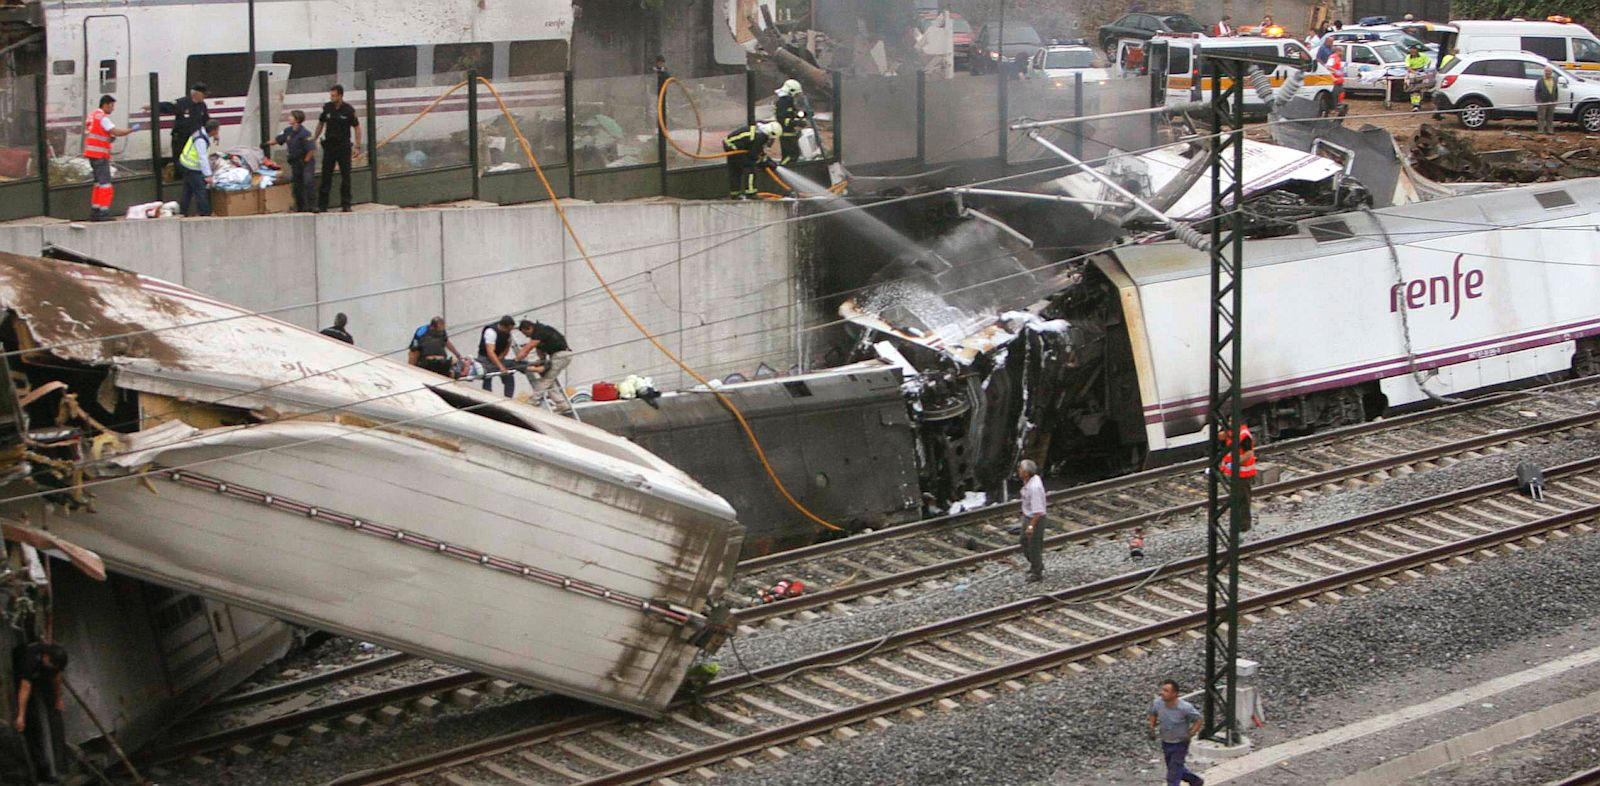 PHOTO: Emergency personnel respond to the scene of a train derailment in Santiago de Compostela, Spain, Wednesday, July 24, 2013.